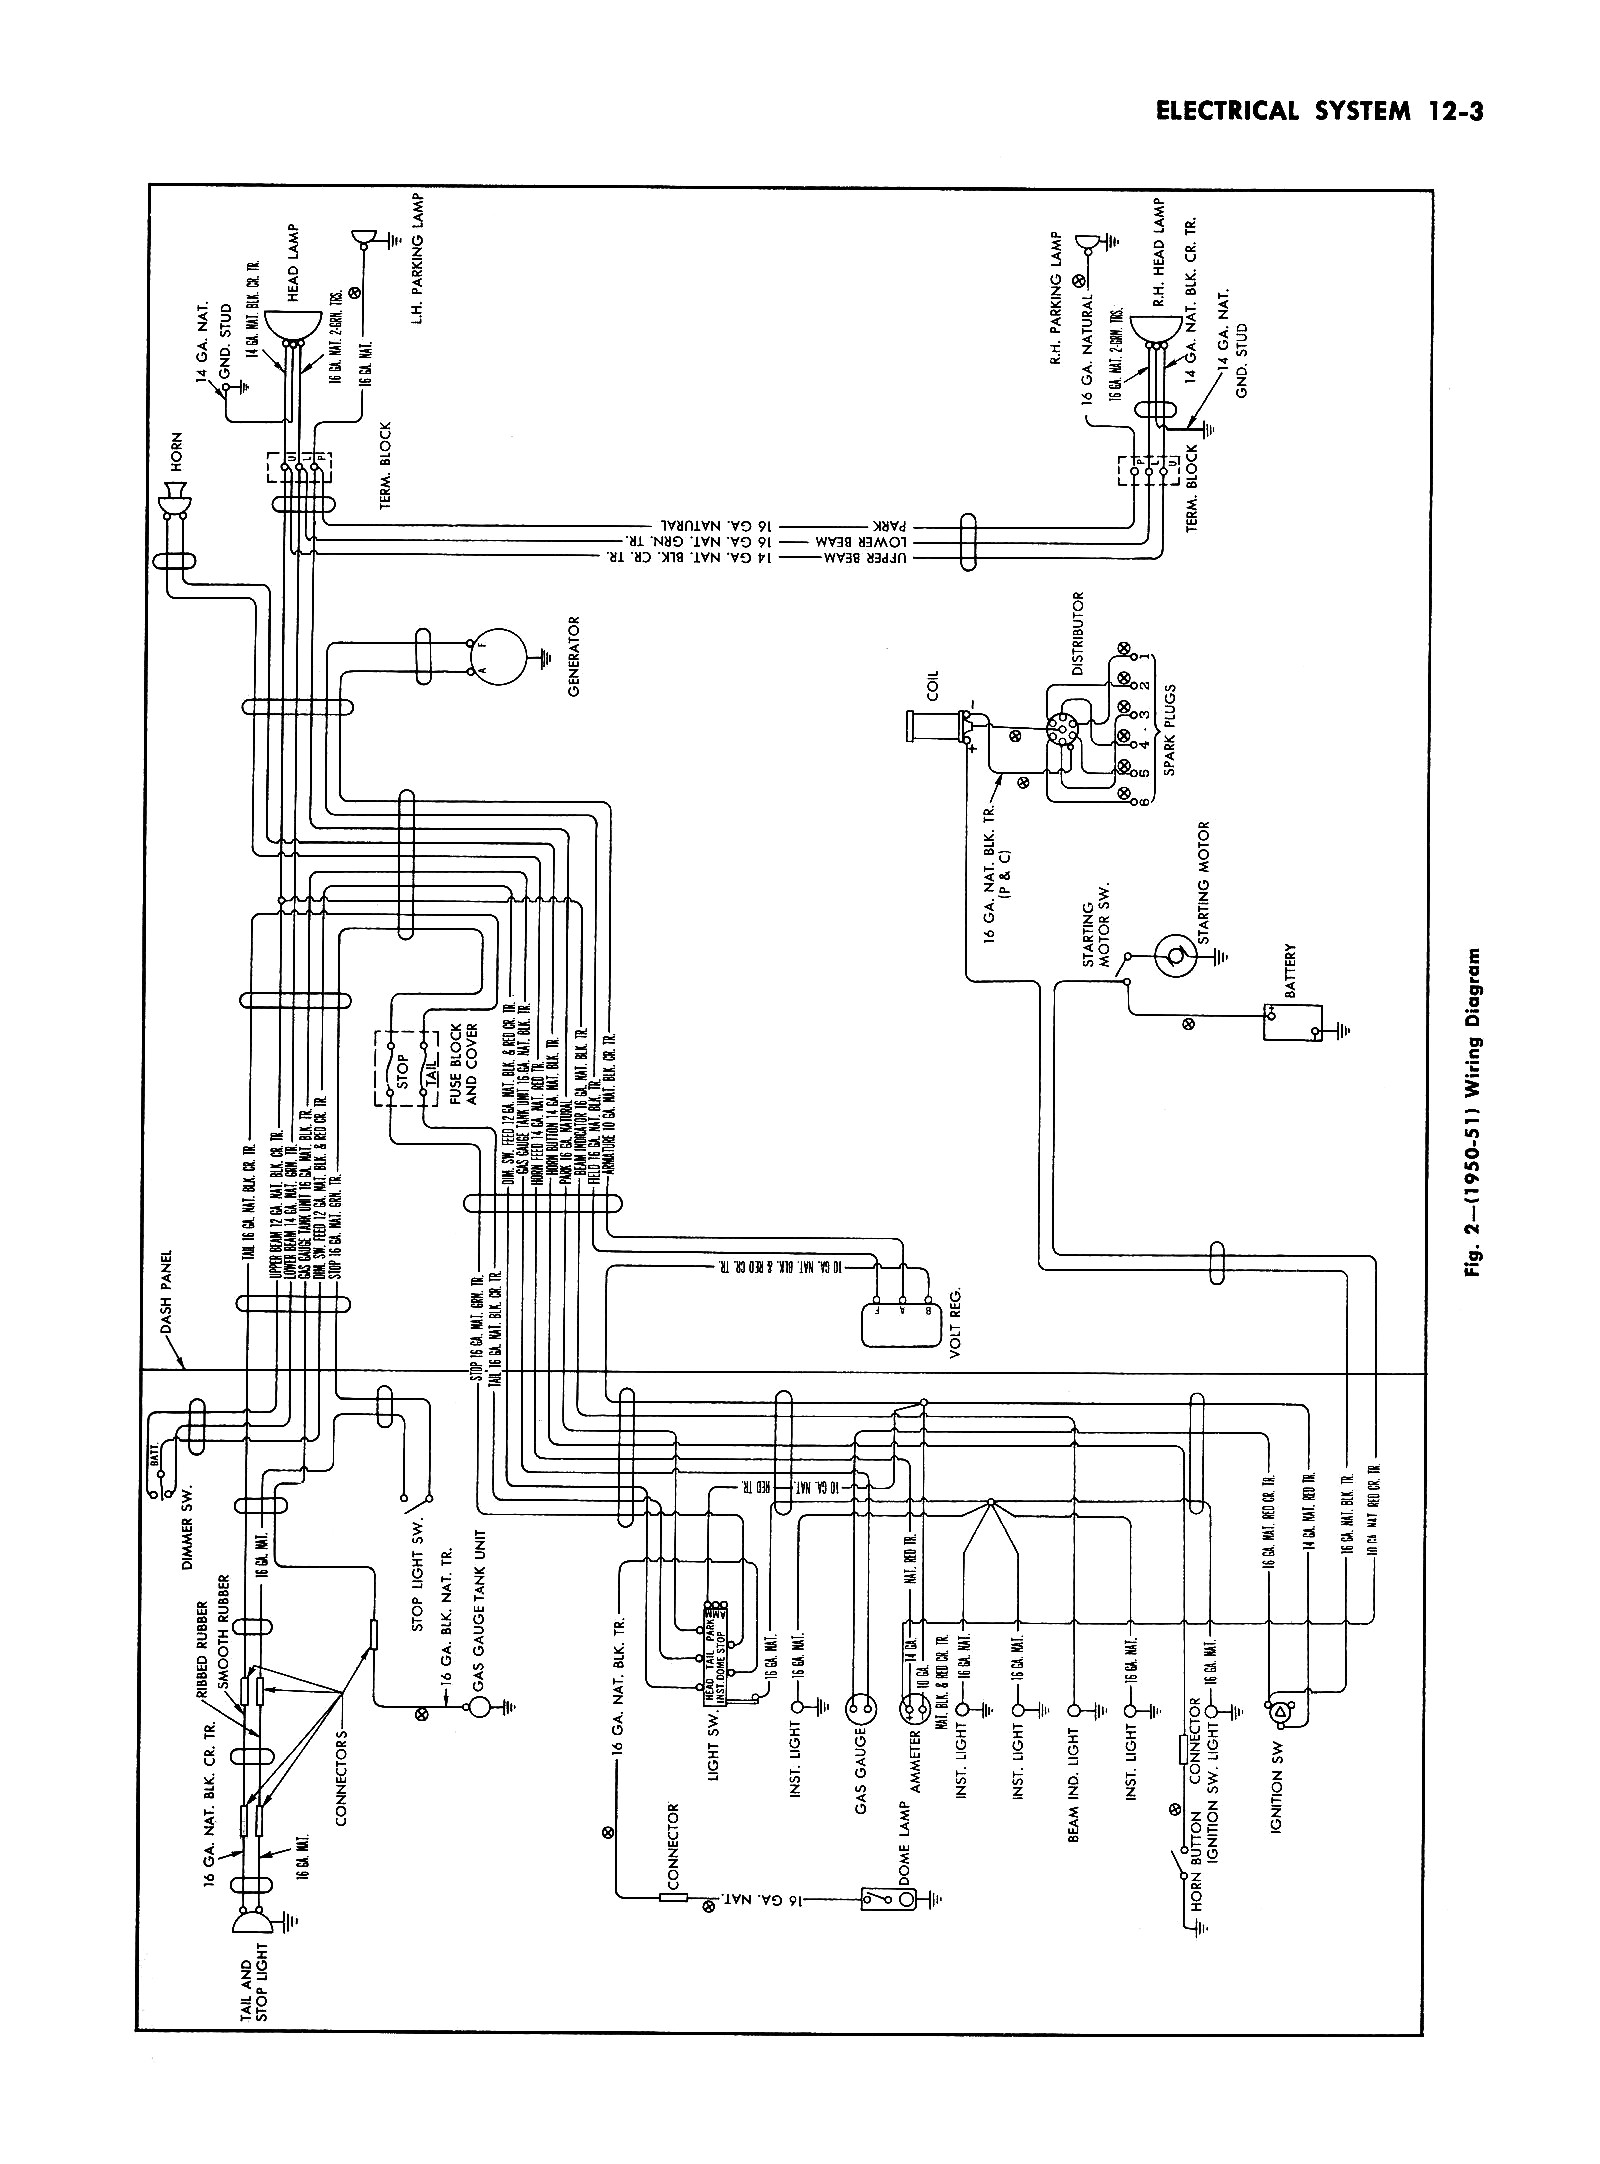 hight resolution of wiring diagram for a 1950 dodge truck wiring diagram mega 1950 dodge wiring harness including international truck radio wiring